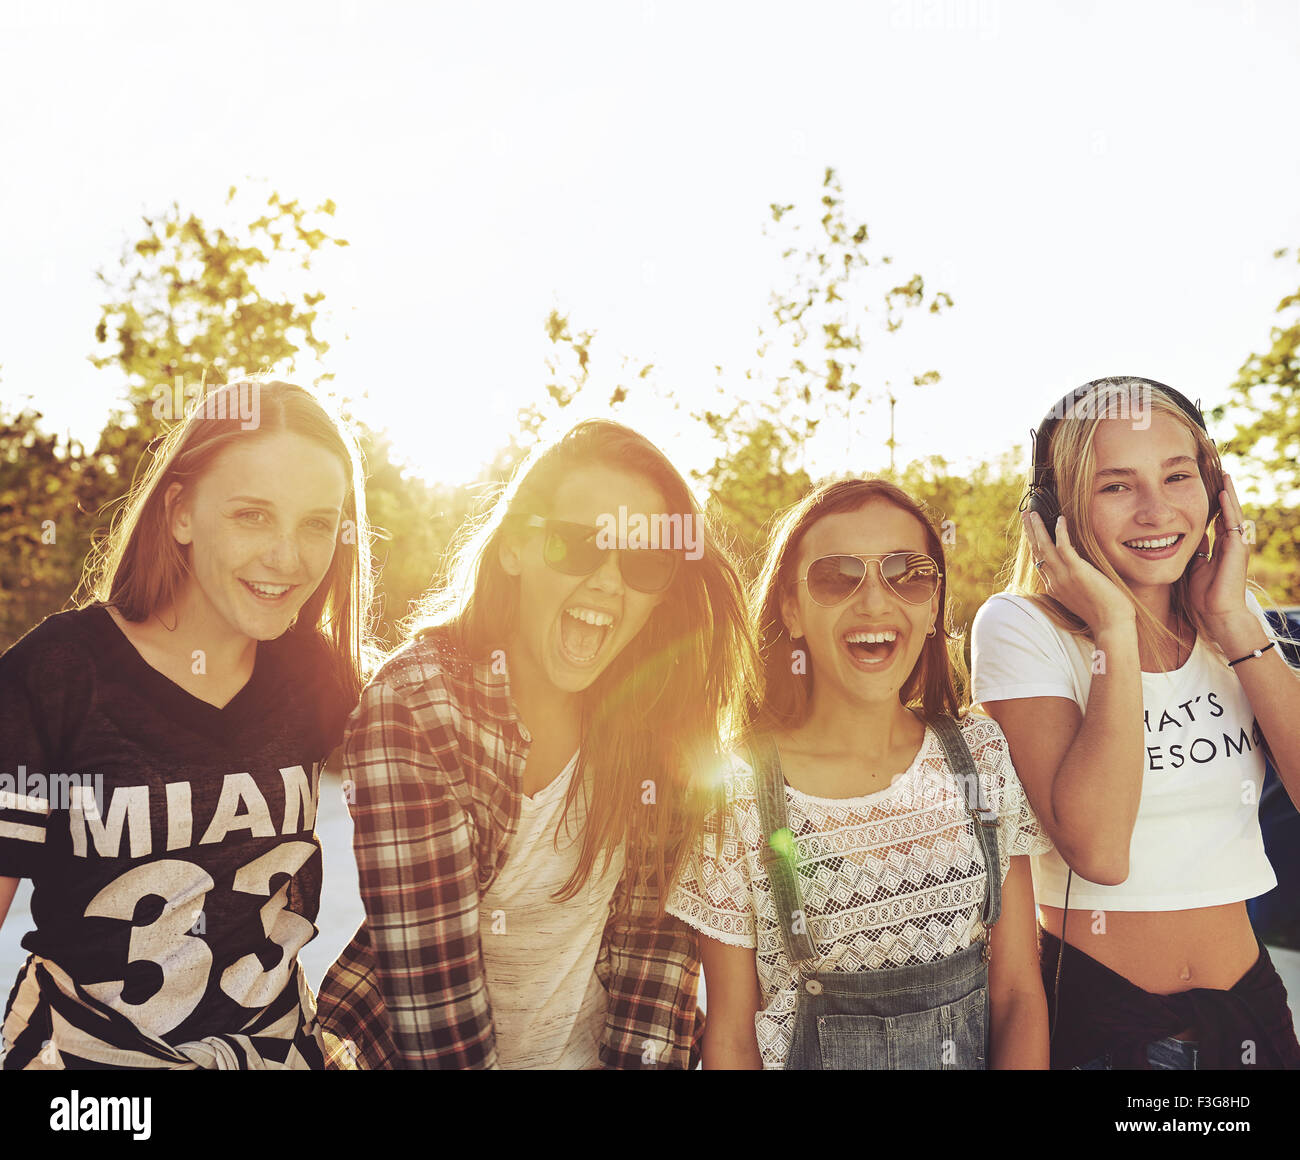 Best friends laughing and having a good time on a summer day - Stock Image